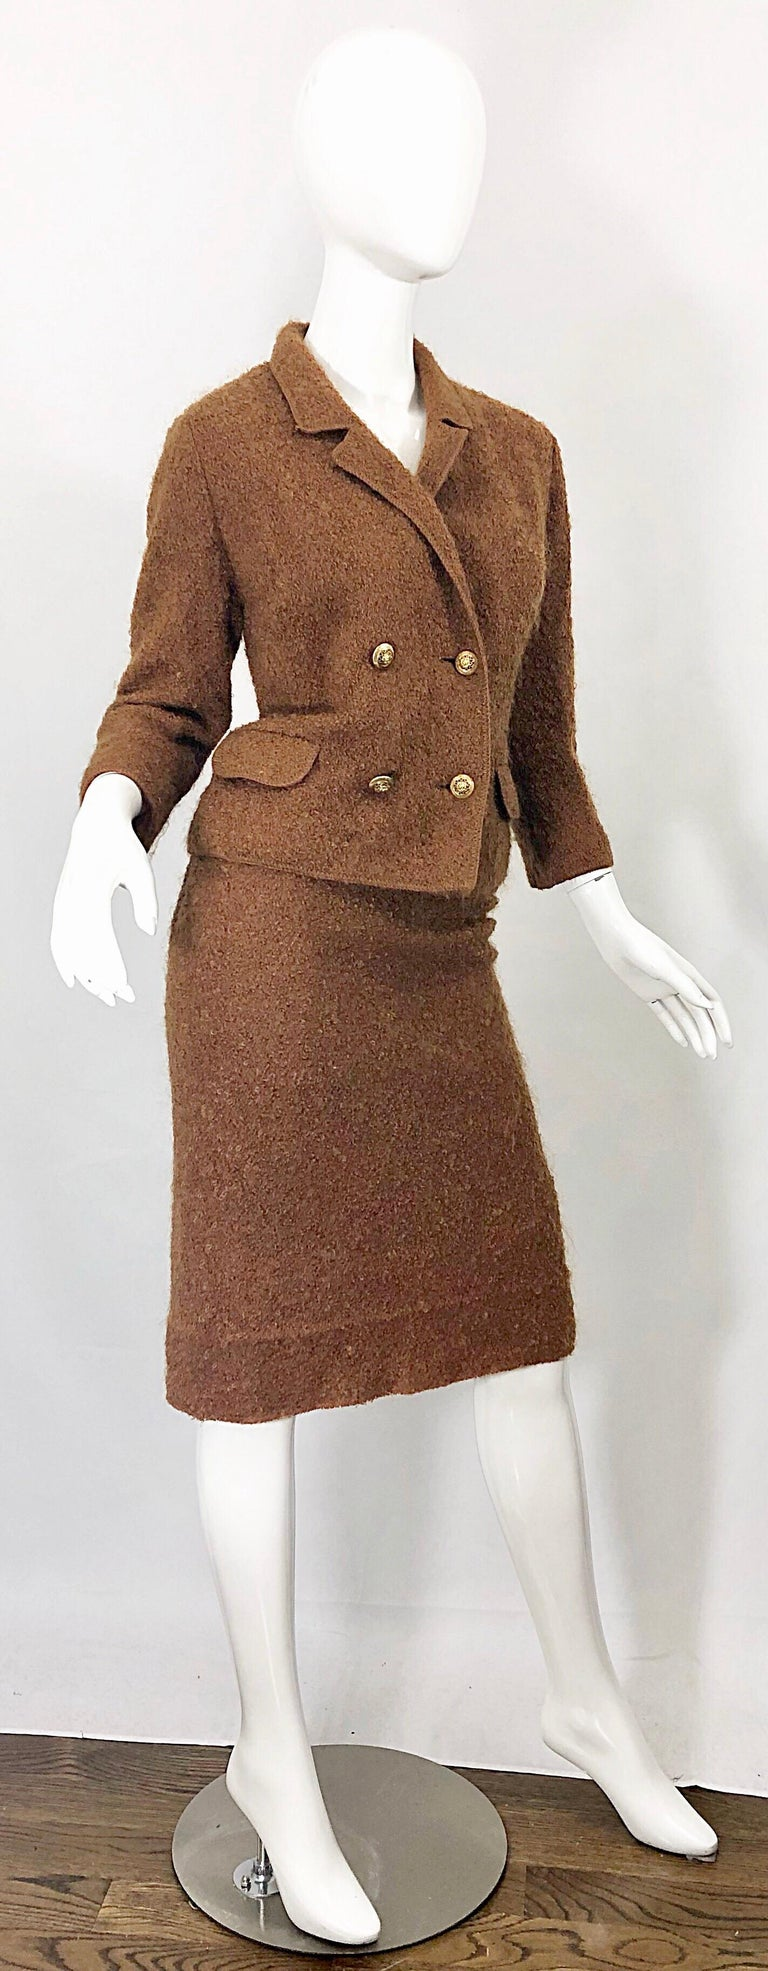 1960s I Magnin Couture Mohair Tobacco Rust Brown Vintage 60s Skirt + Blazer Suit For Sale 8